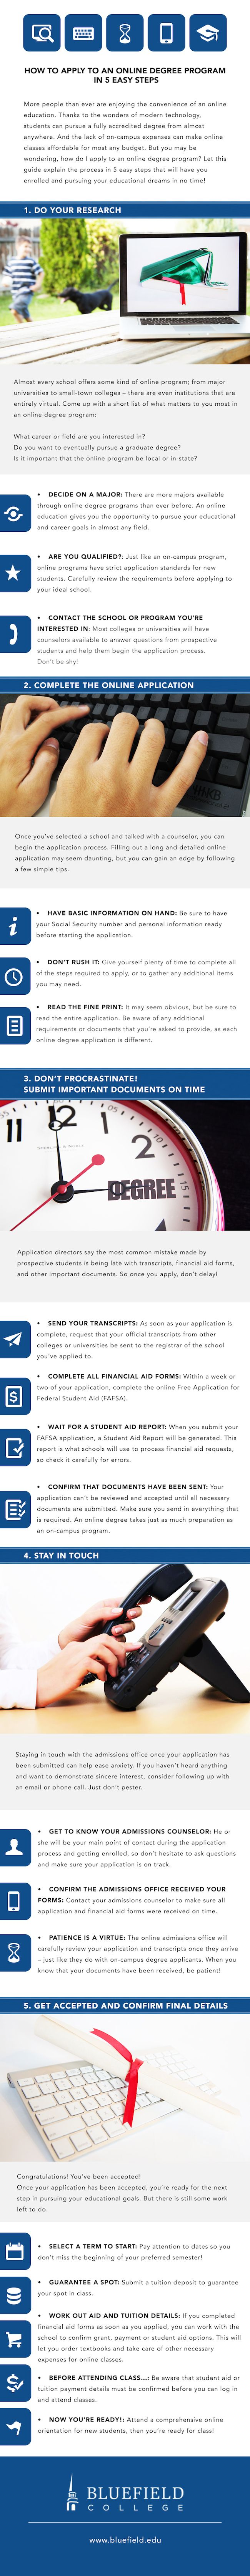 The How to Apply to an Online Degree Program Infographic explains the process that will have you enrolled and pursuing your educational dreams in no time!